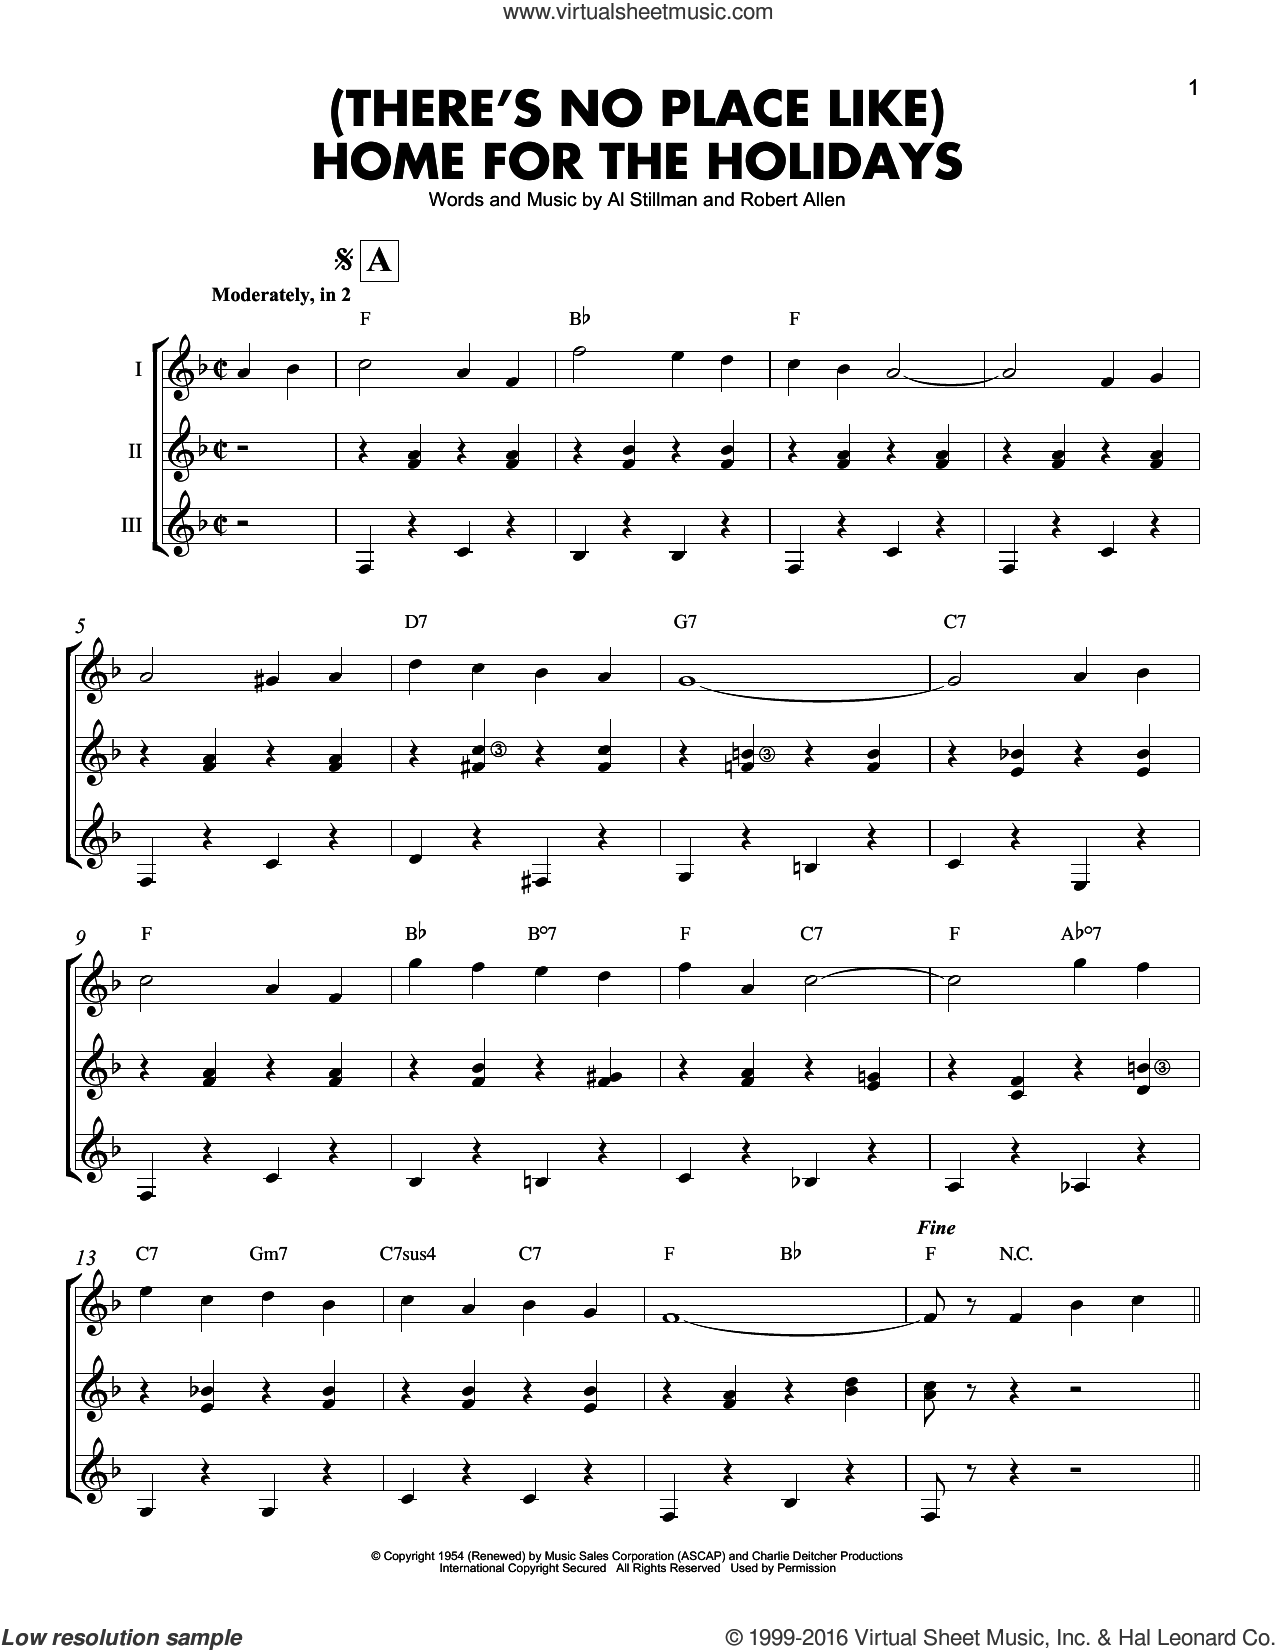 (There's No Place Like) Home For The Holidays sheet music for guitar ensemble by Robert Allen, Perry Como and Al Stillman. Score Image Preview.